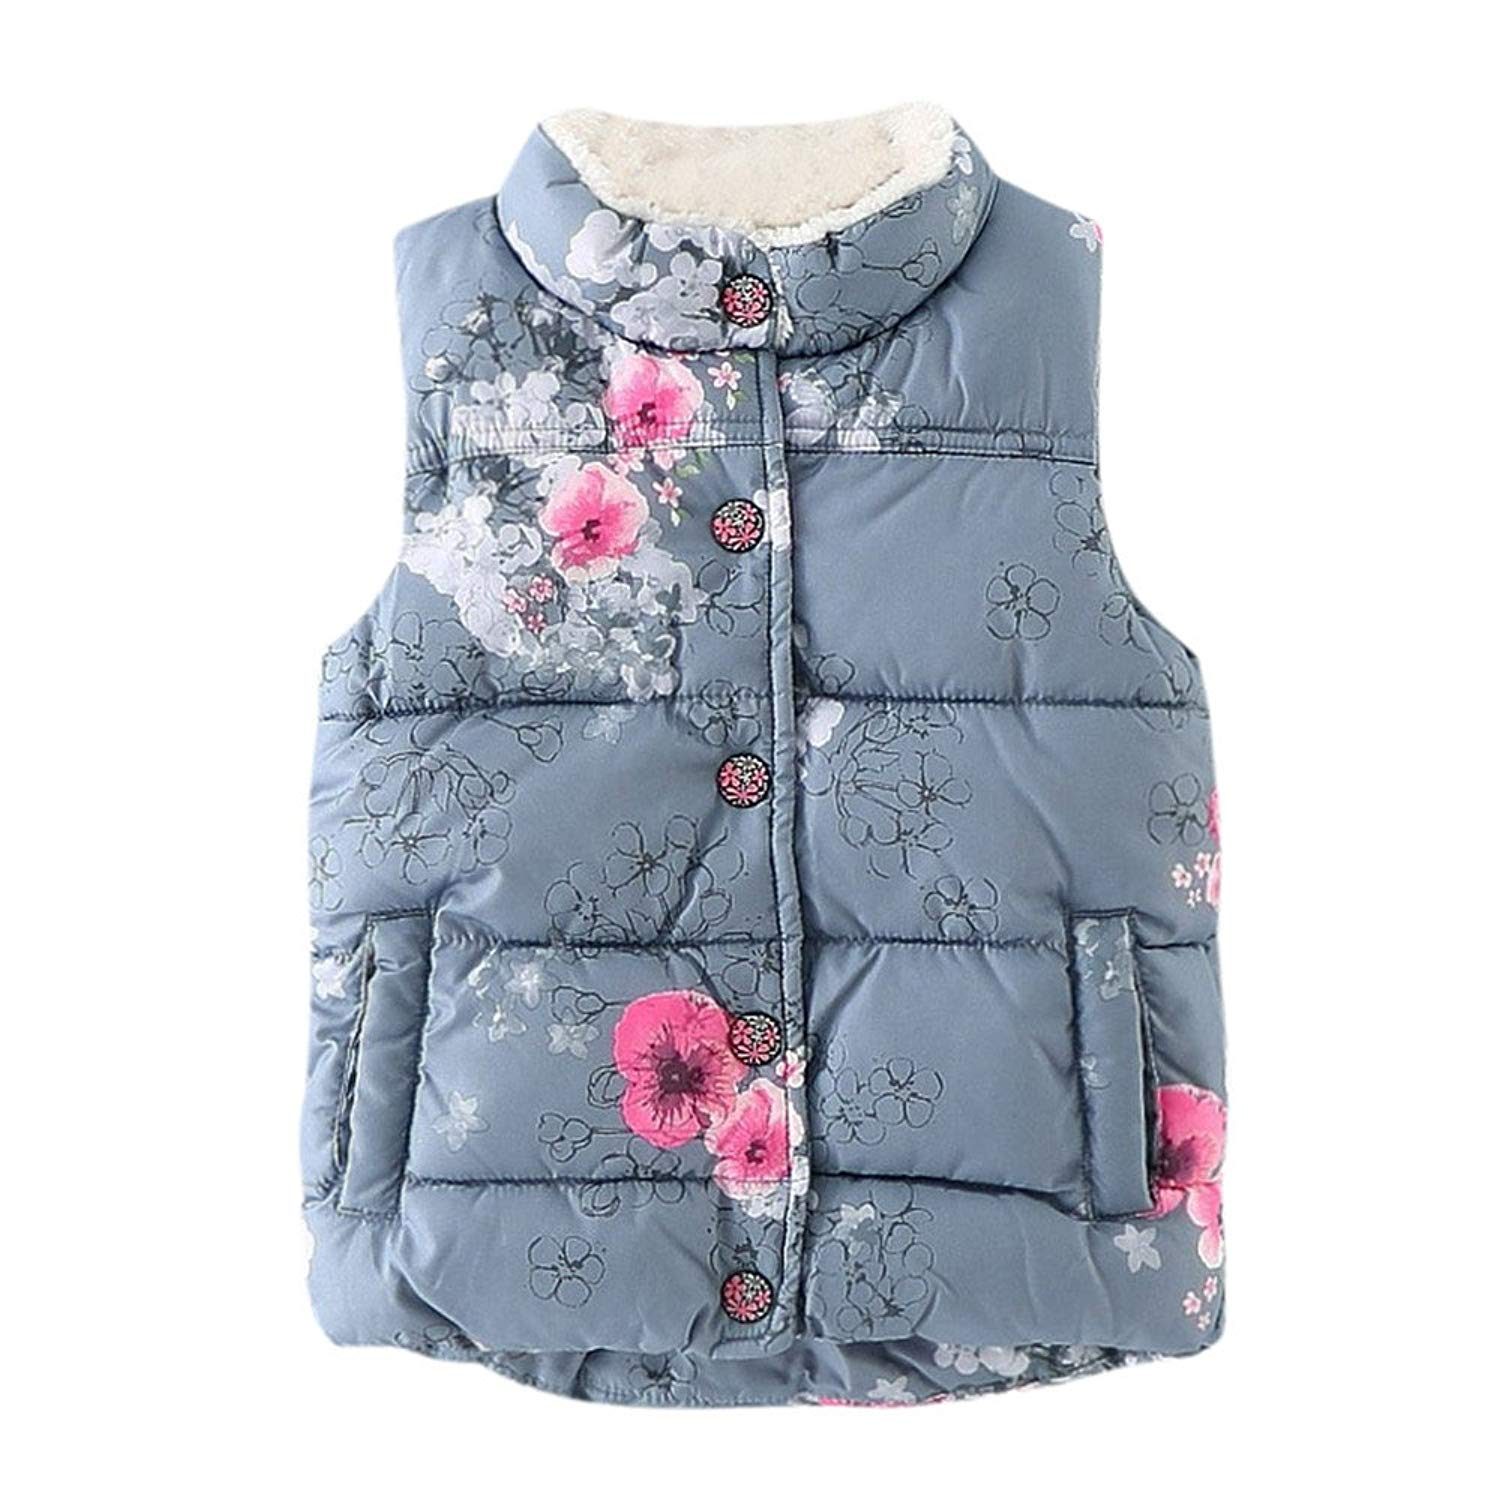 Moonper Kid Infant Toddler Baby Boys Girls Winter and Autumn Warm Thick Floral Jackets Waistcoat Clothes Coat